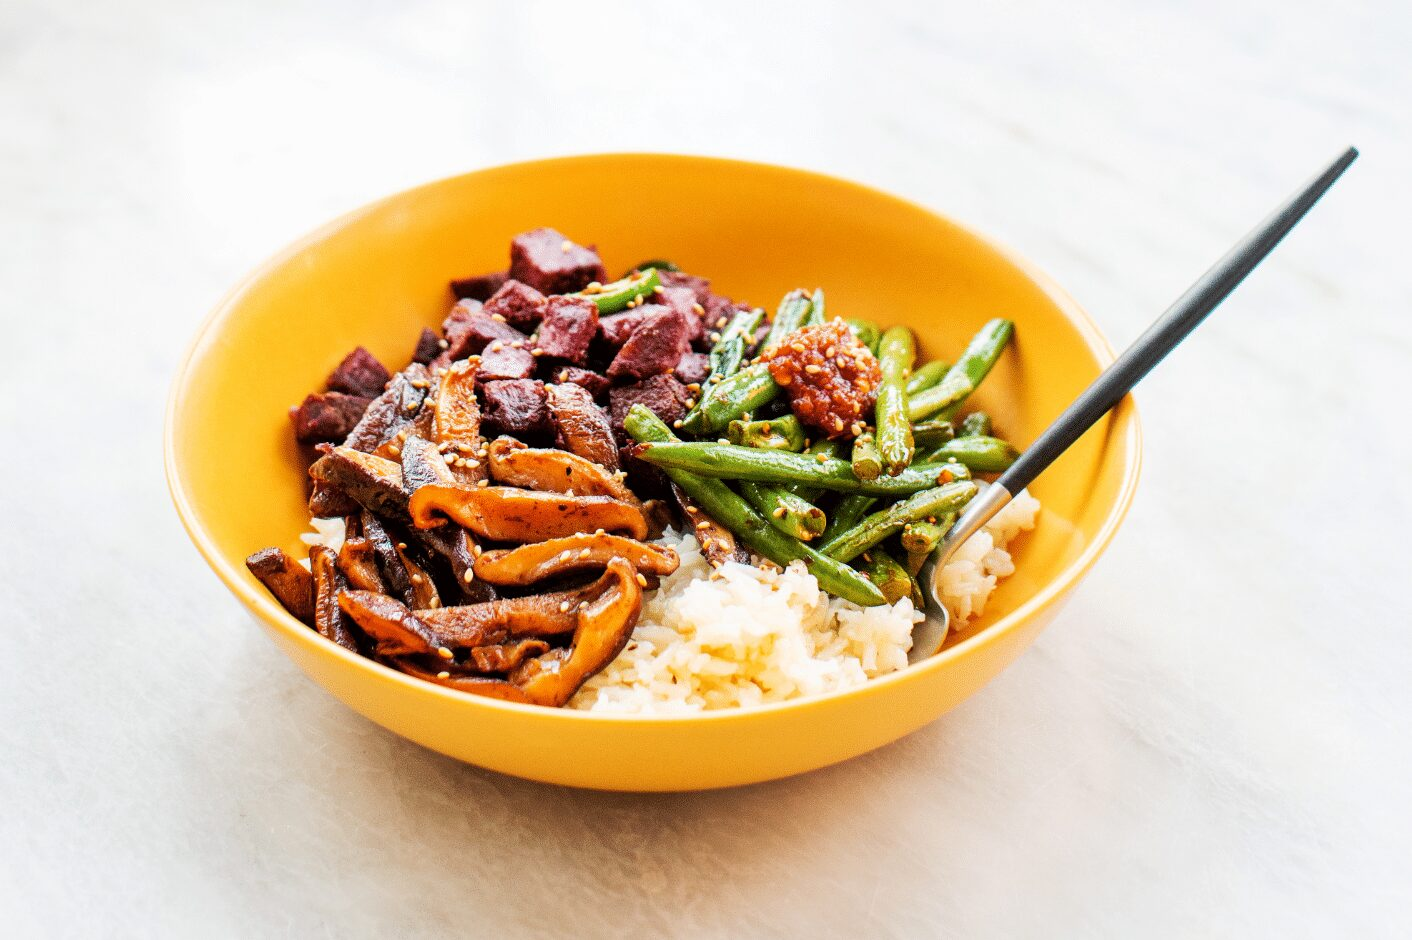 Chinese Five Spice Rice Bowls with Vegetables